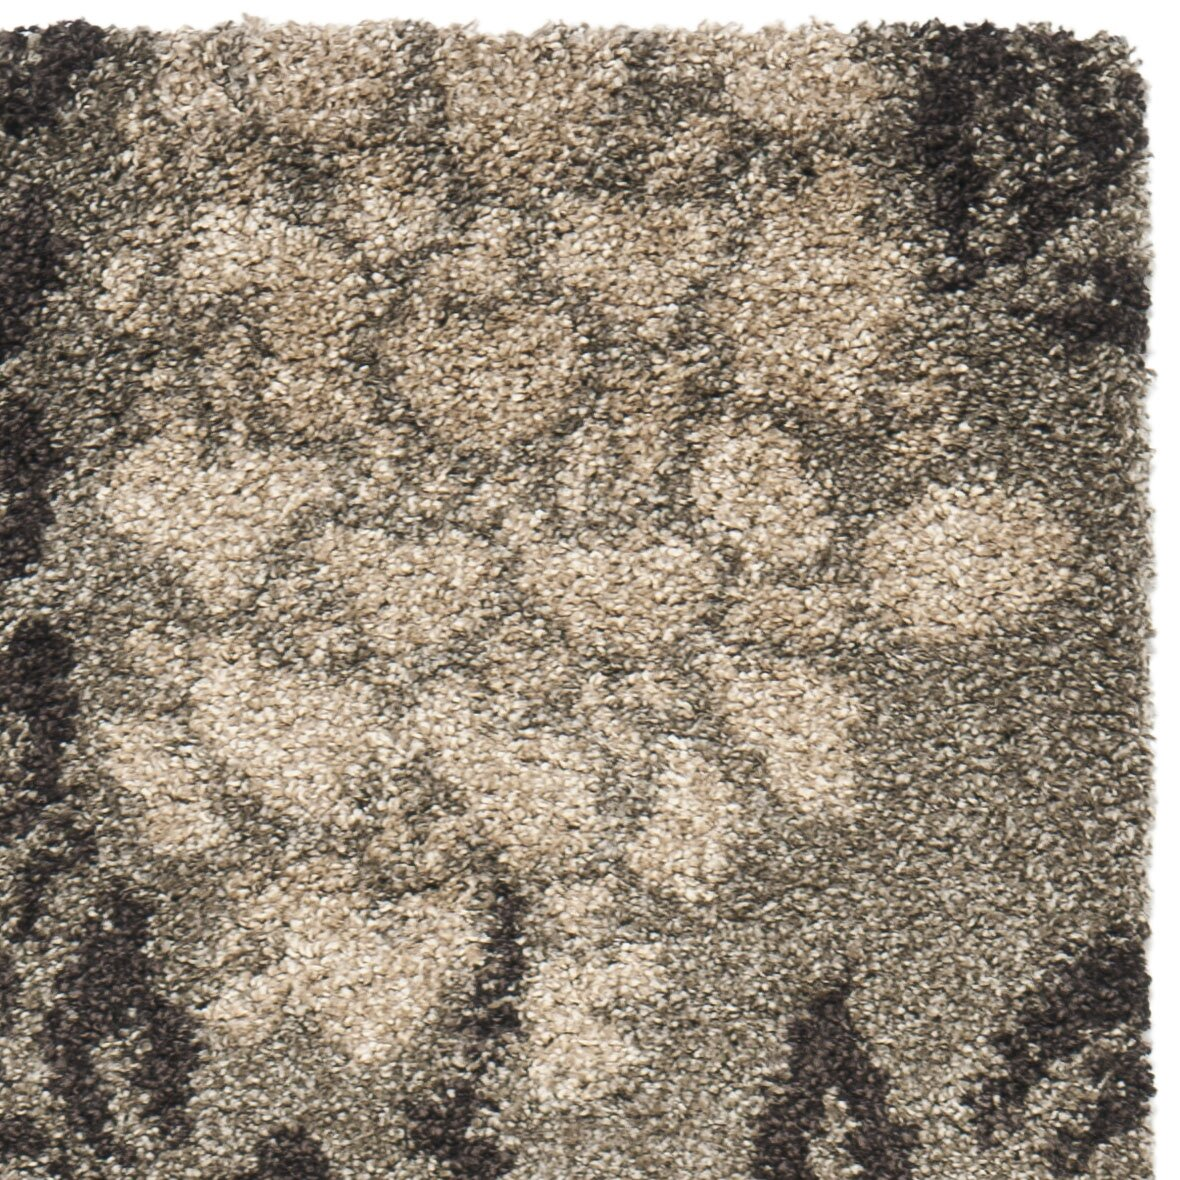 Oriental Rugs Jupiter Florida: Safavieh Florida Shag Smoke/Dark Brown Area Rug & Reviews